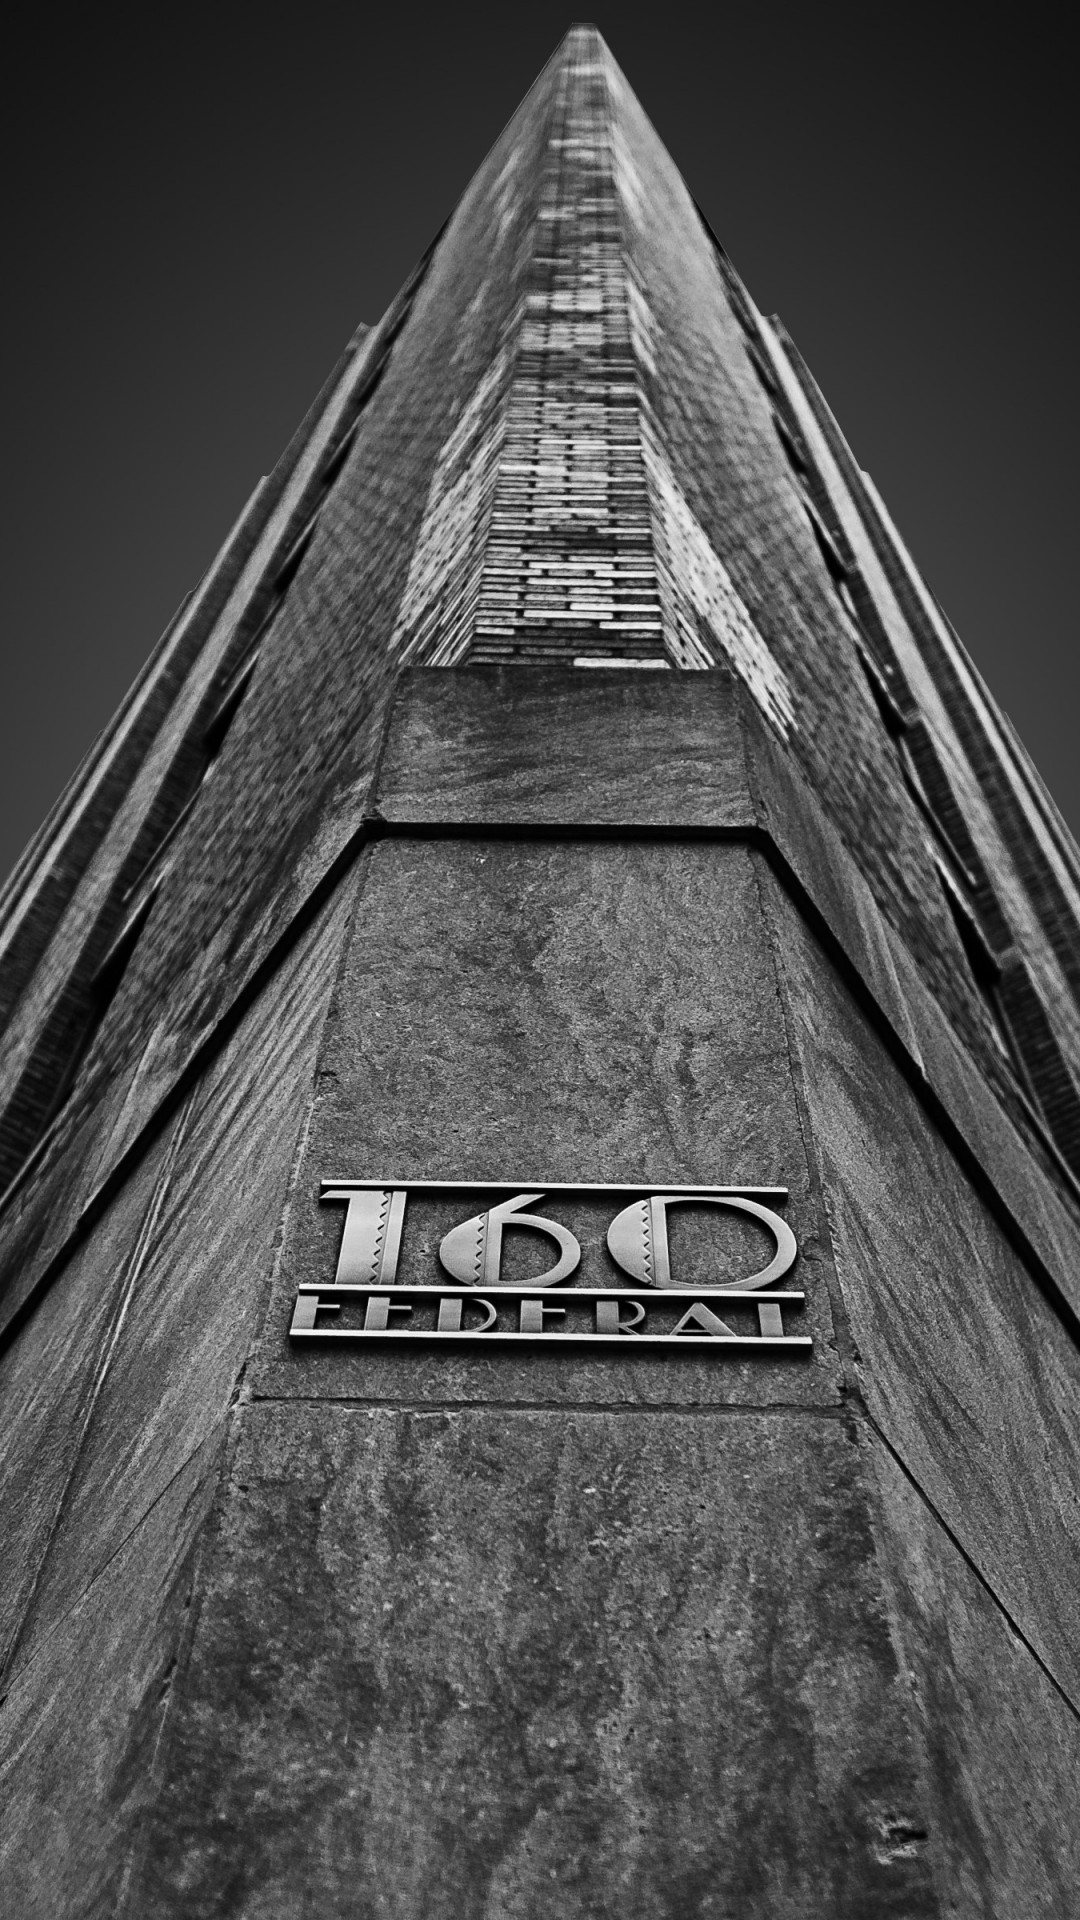 160 Federal building from Boston wallpaper 1080x1920